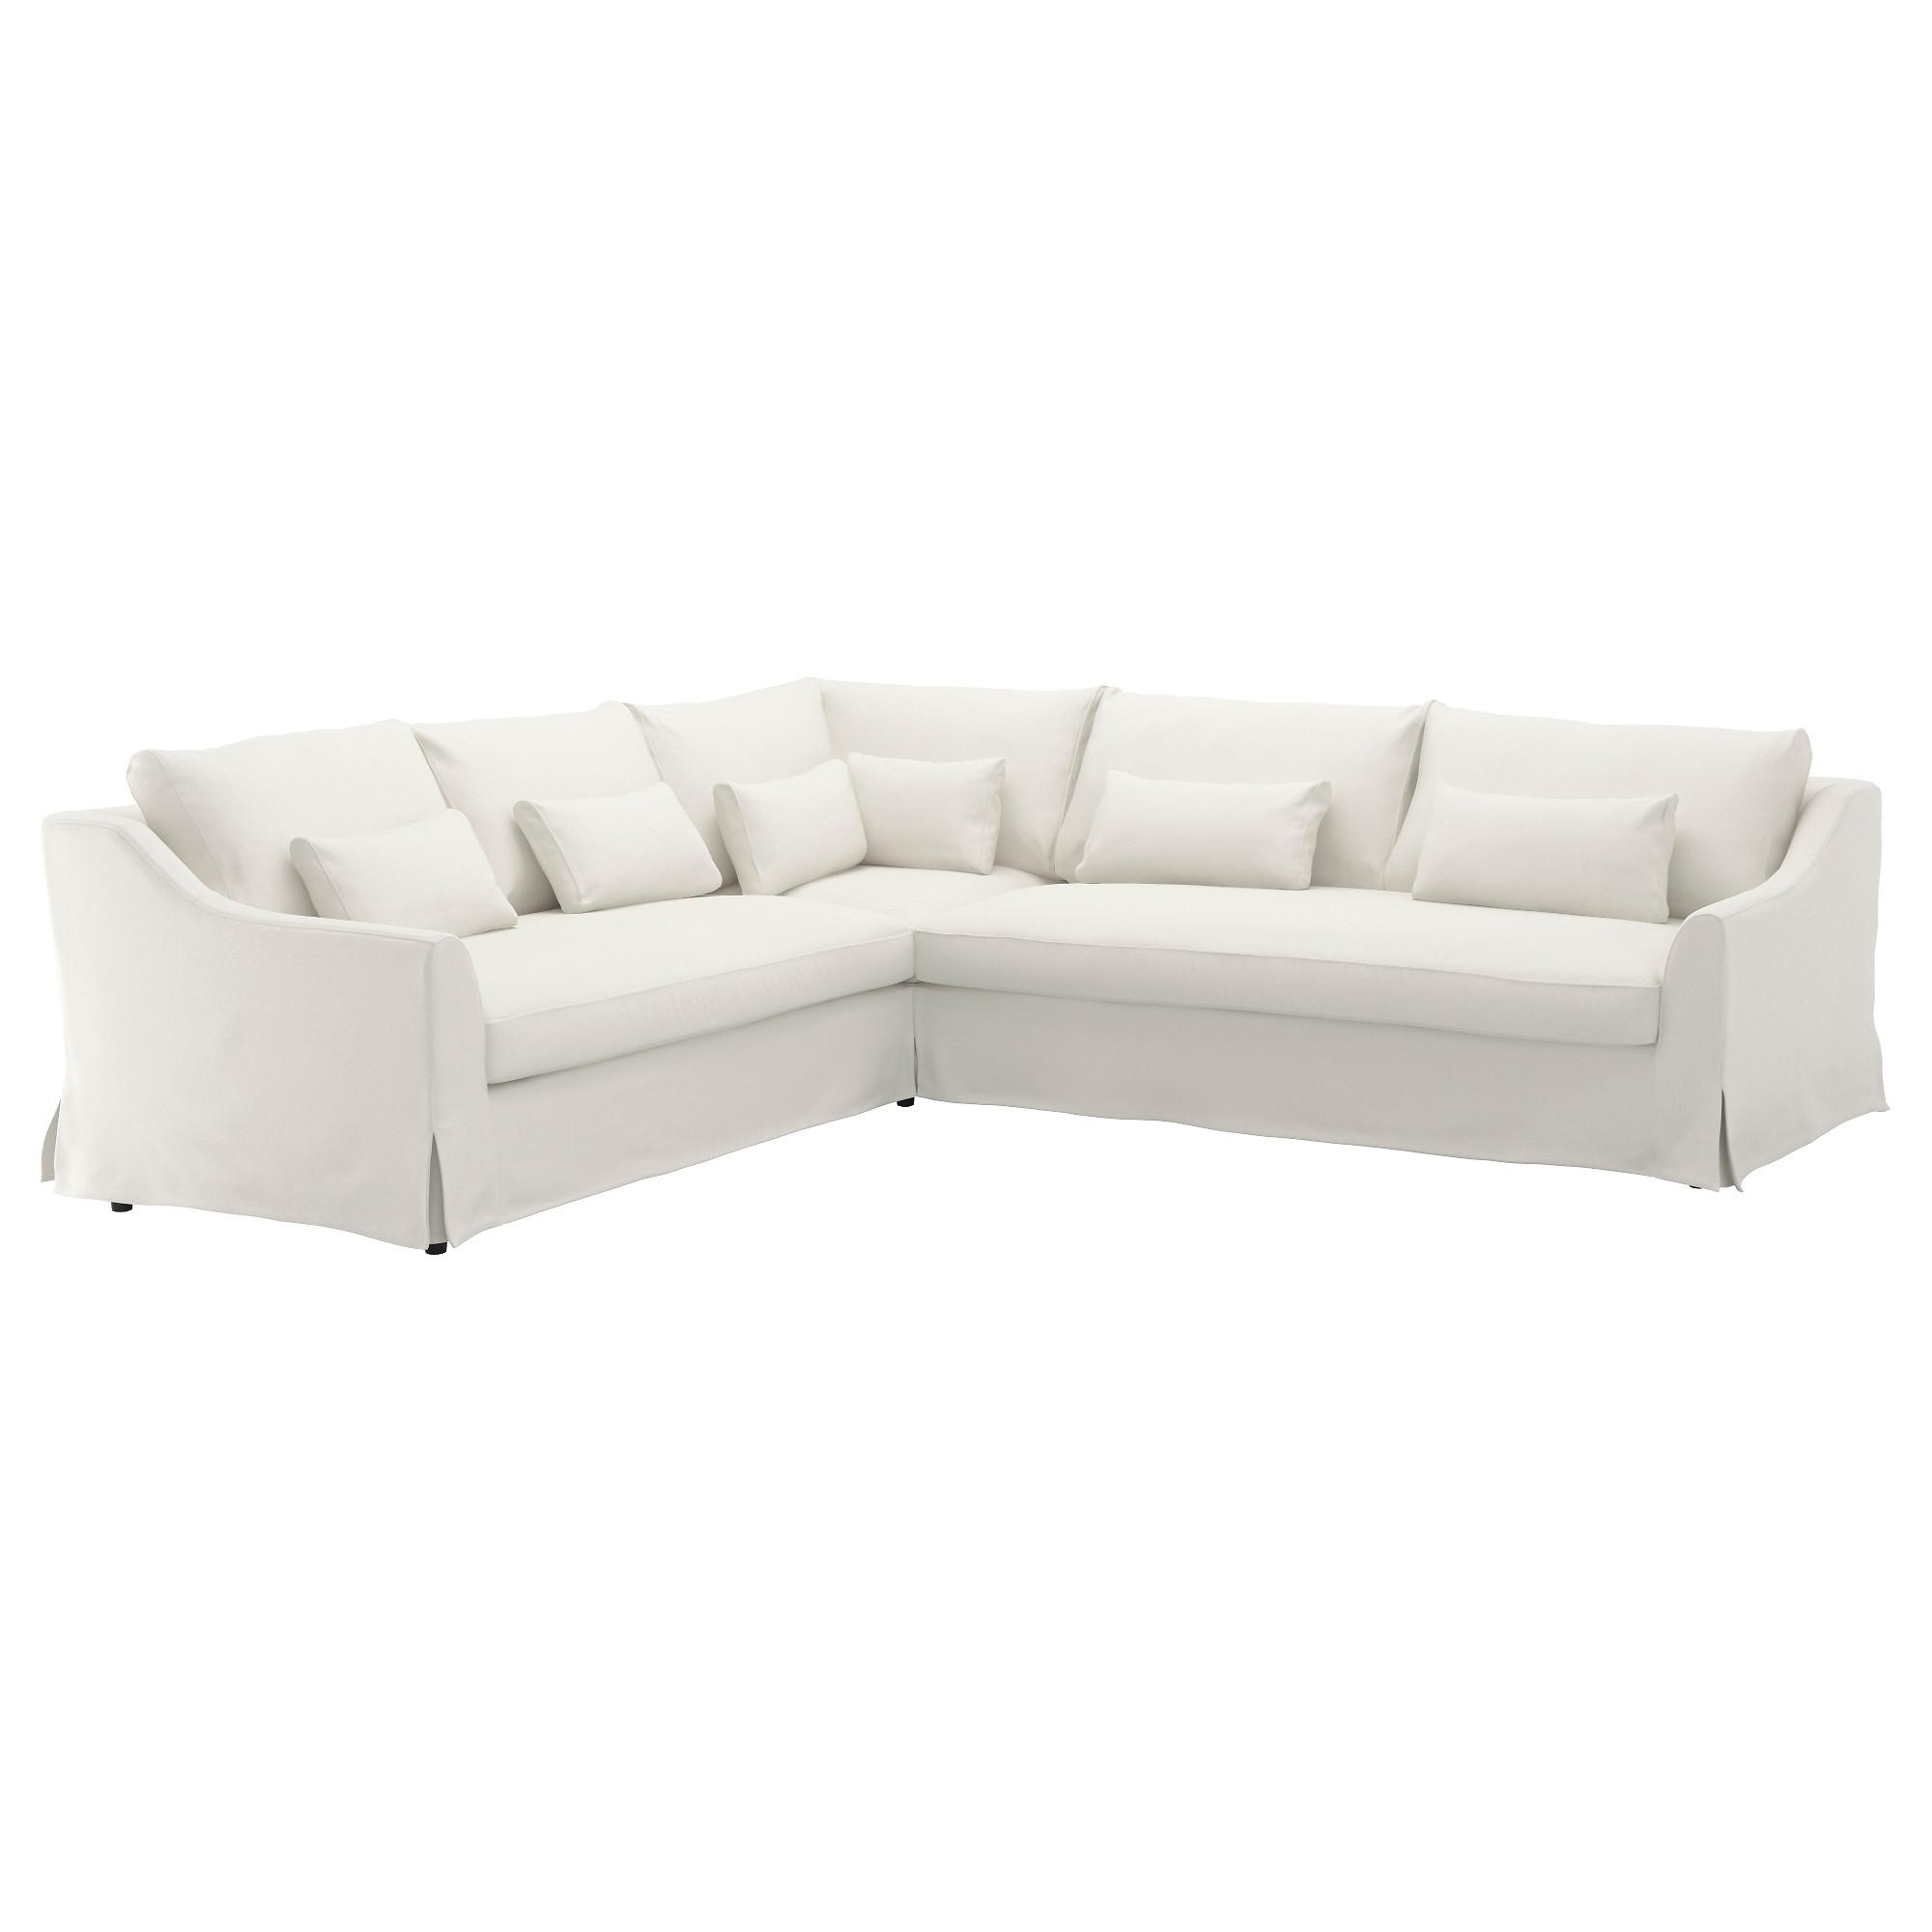 Fabric Sectional Sofas – Ikea Inside 2 Seat Sectional Sofas (Image 8 of 15)